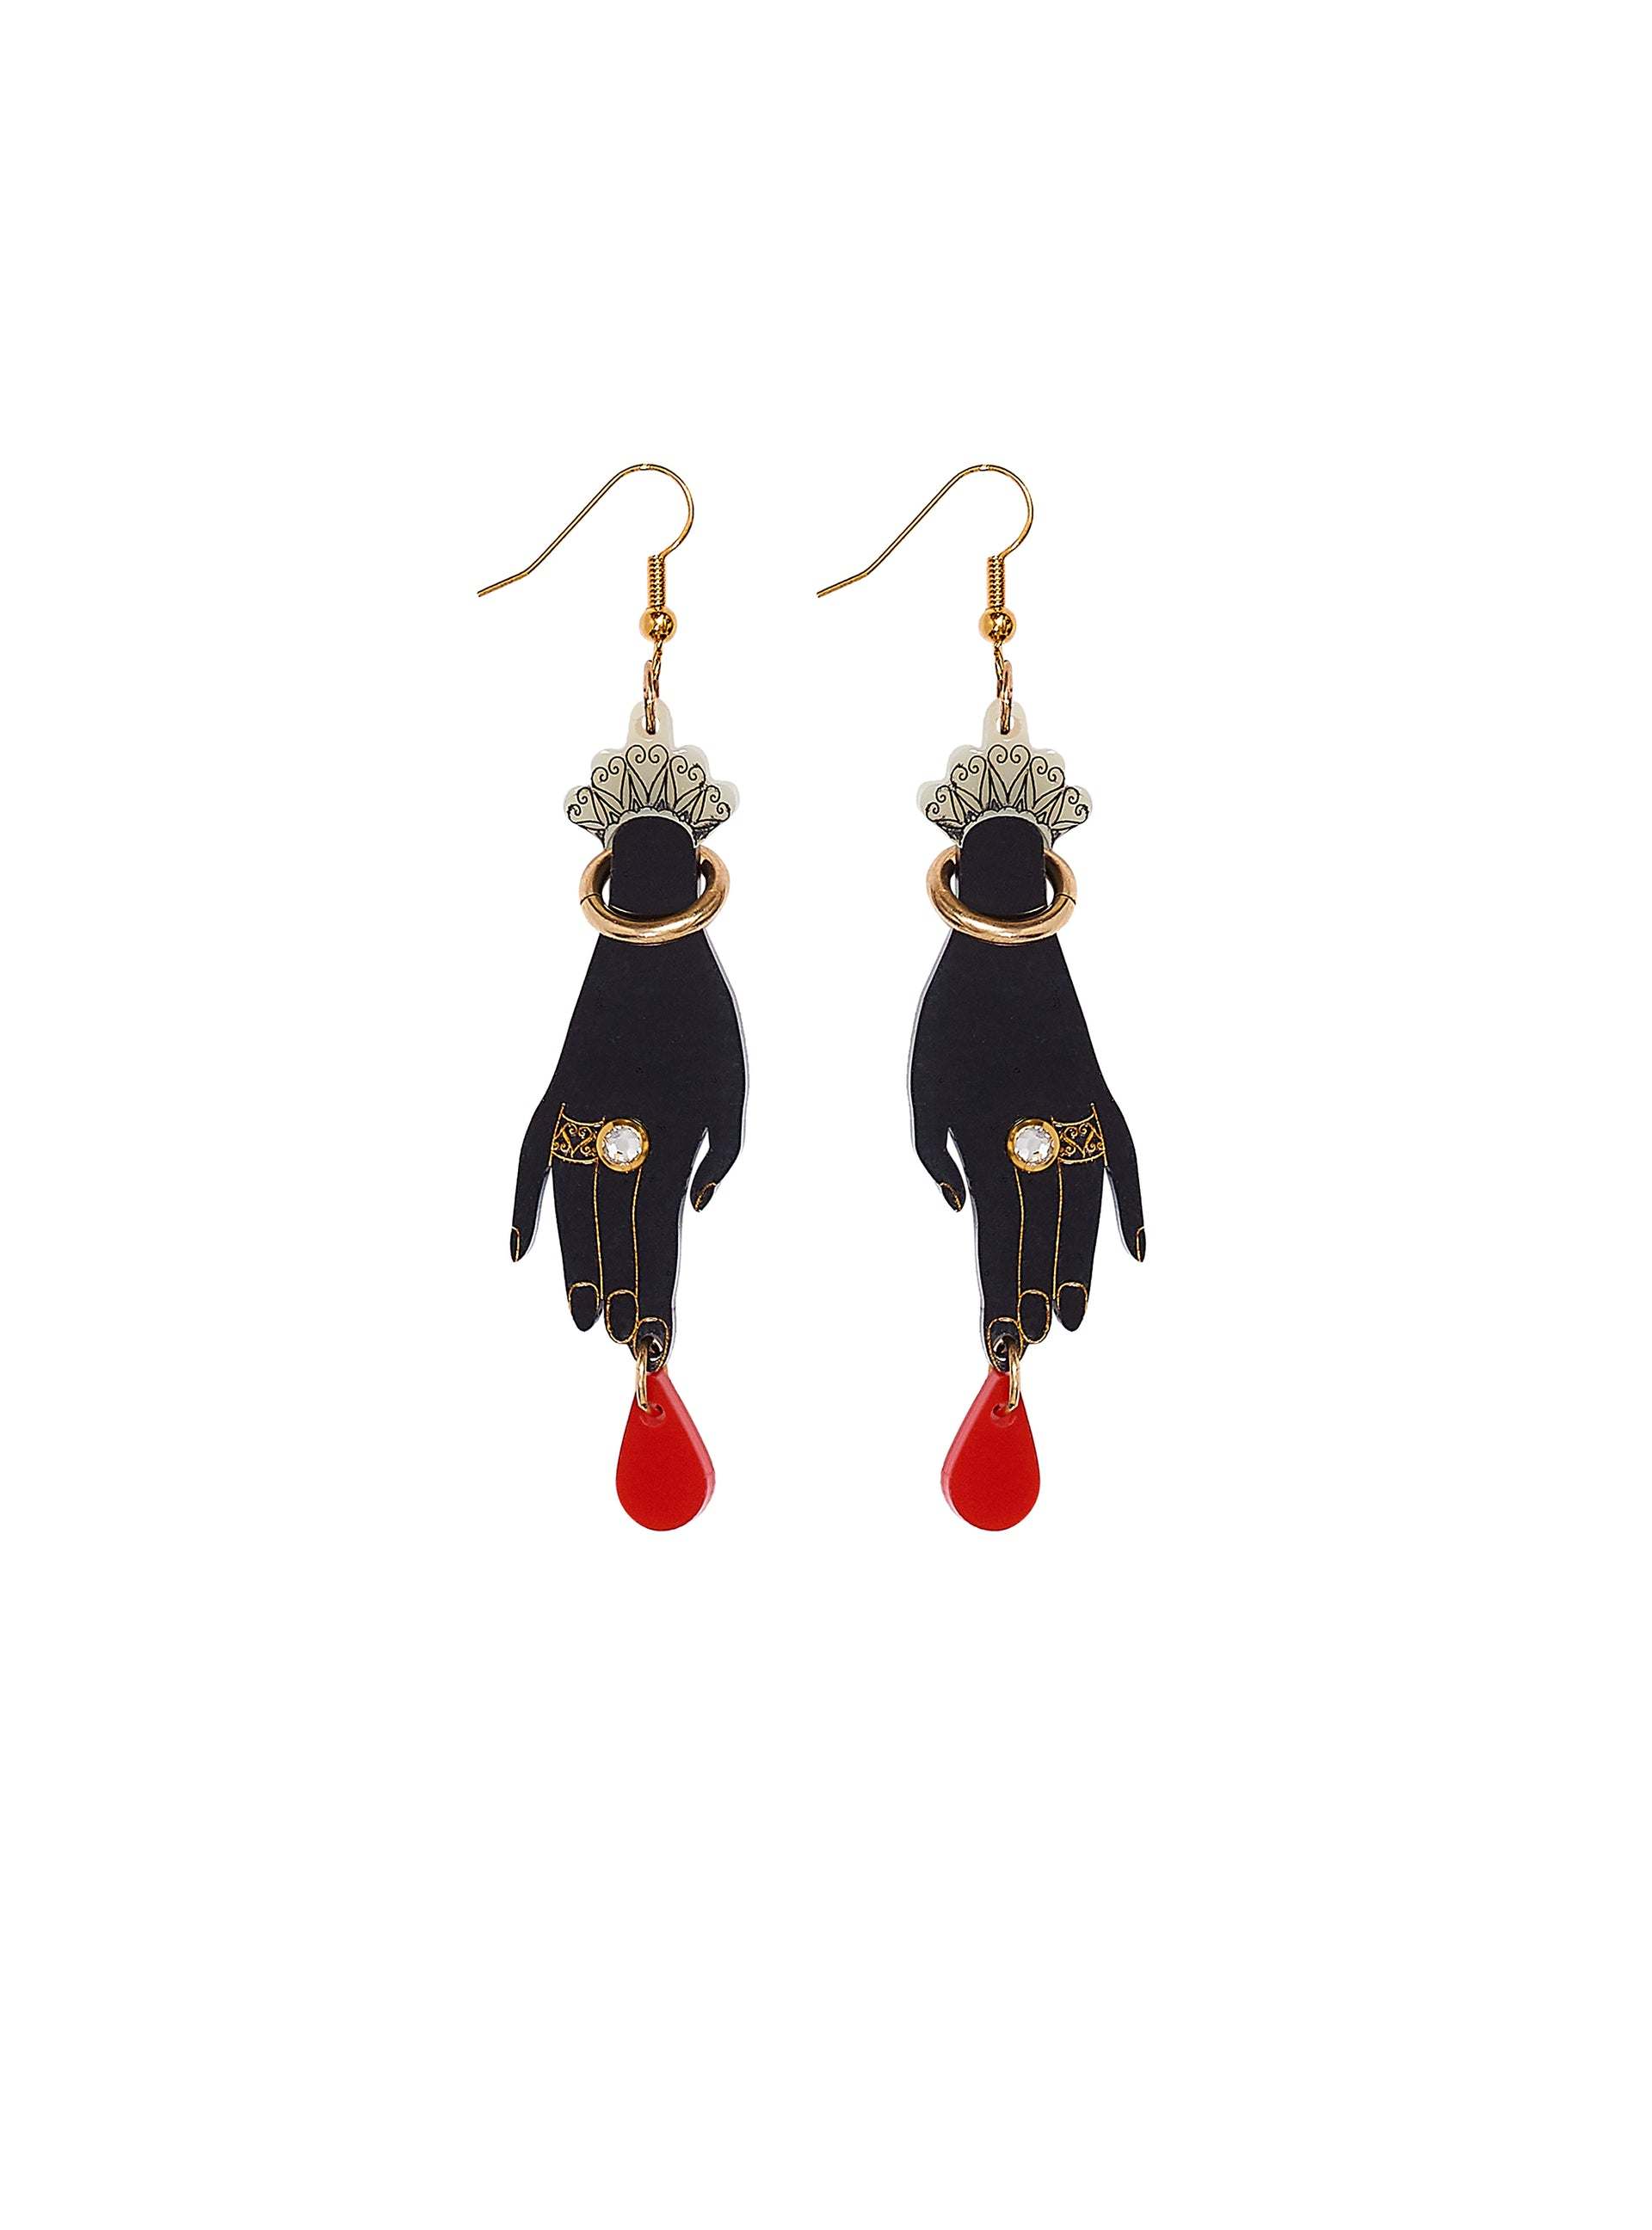 Pricked Finger Earrings